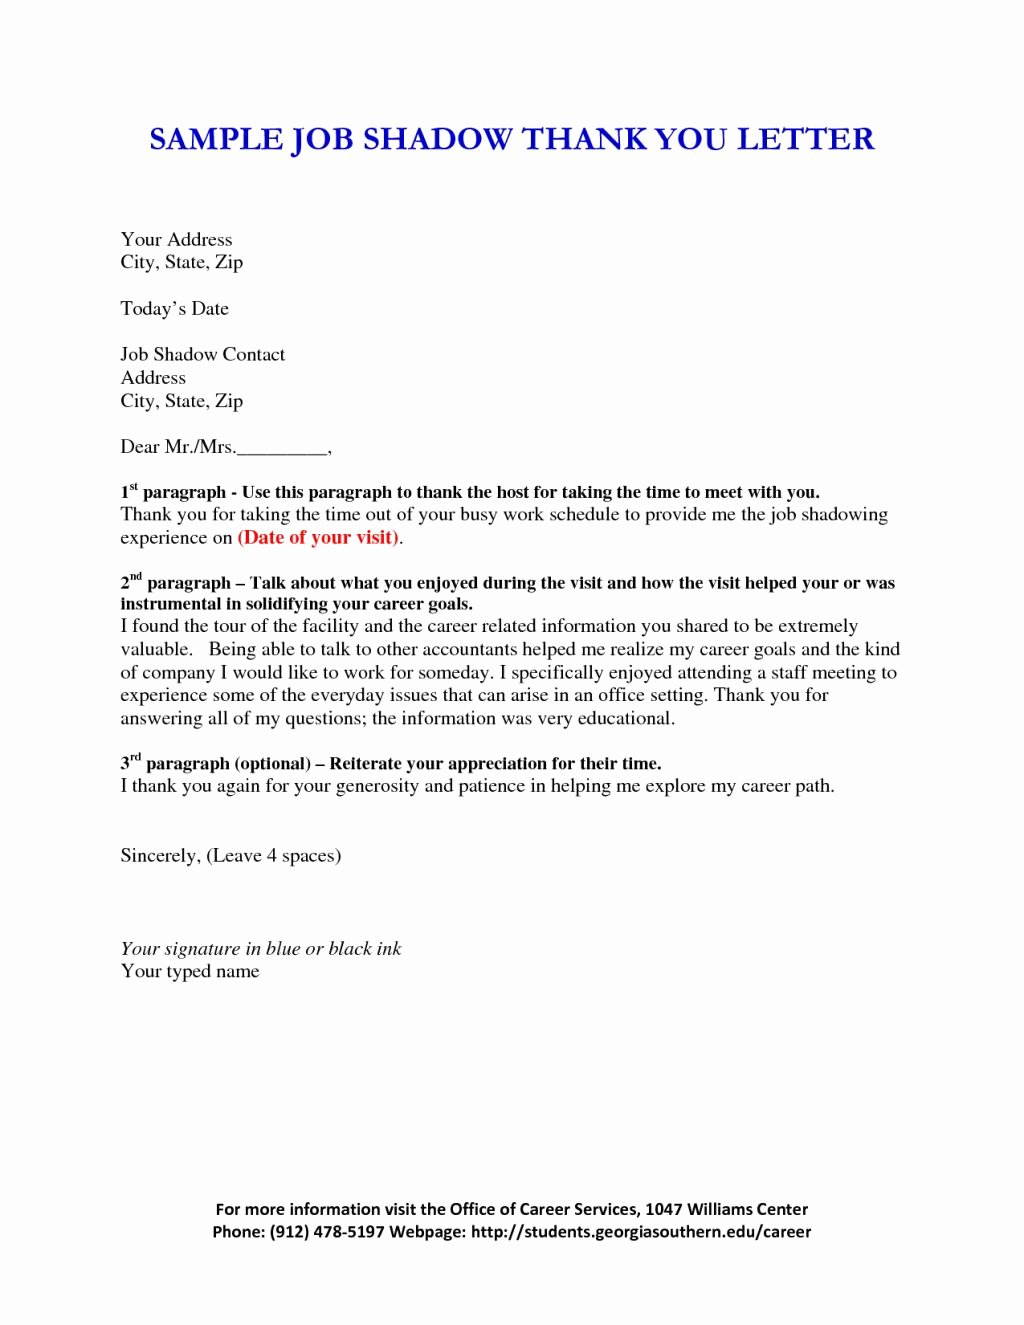 Shadowing Letter Of Recommendation Sample Best Of How to Write A Letter for Job Shadowing